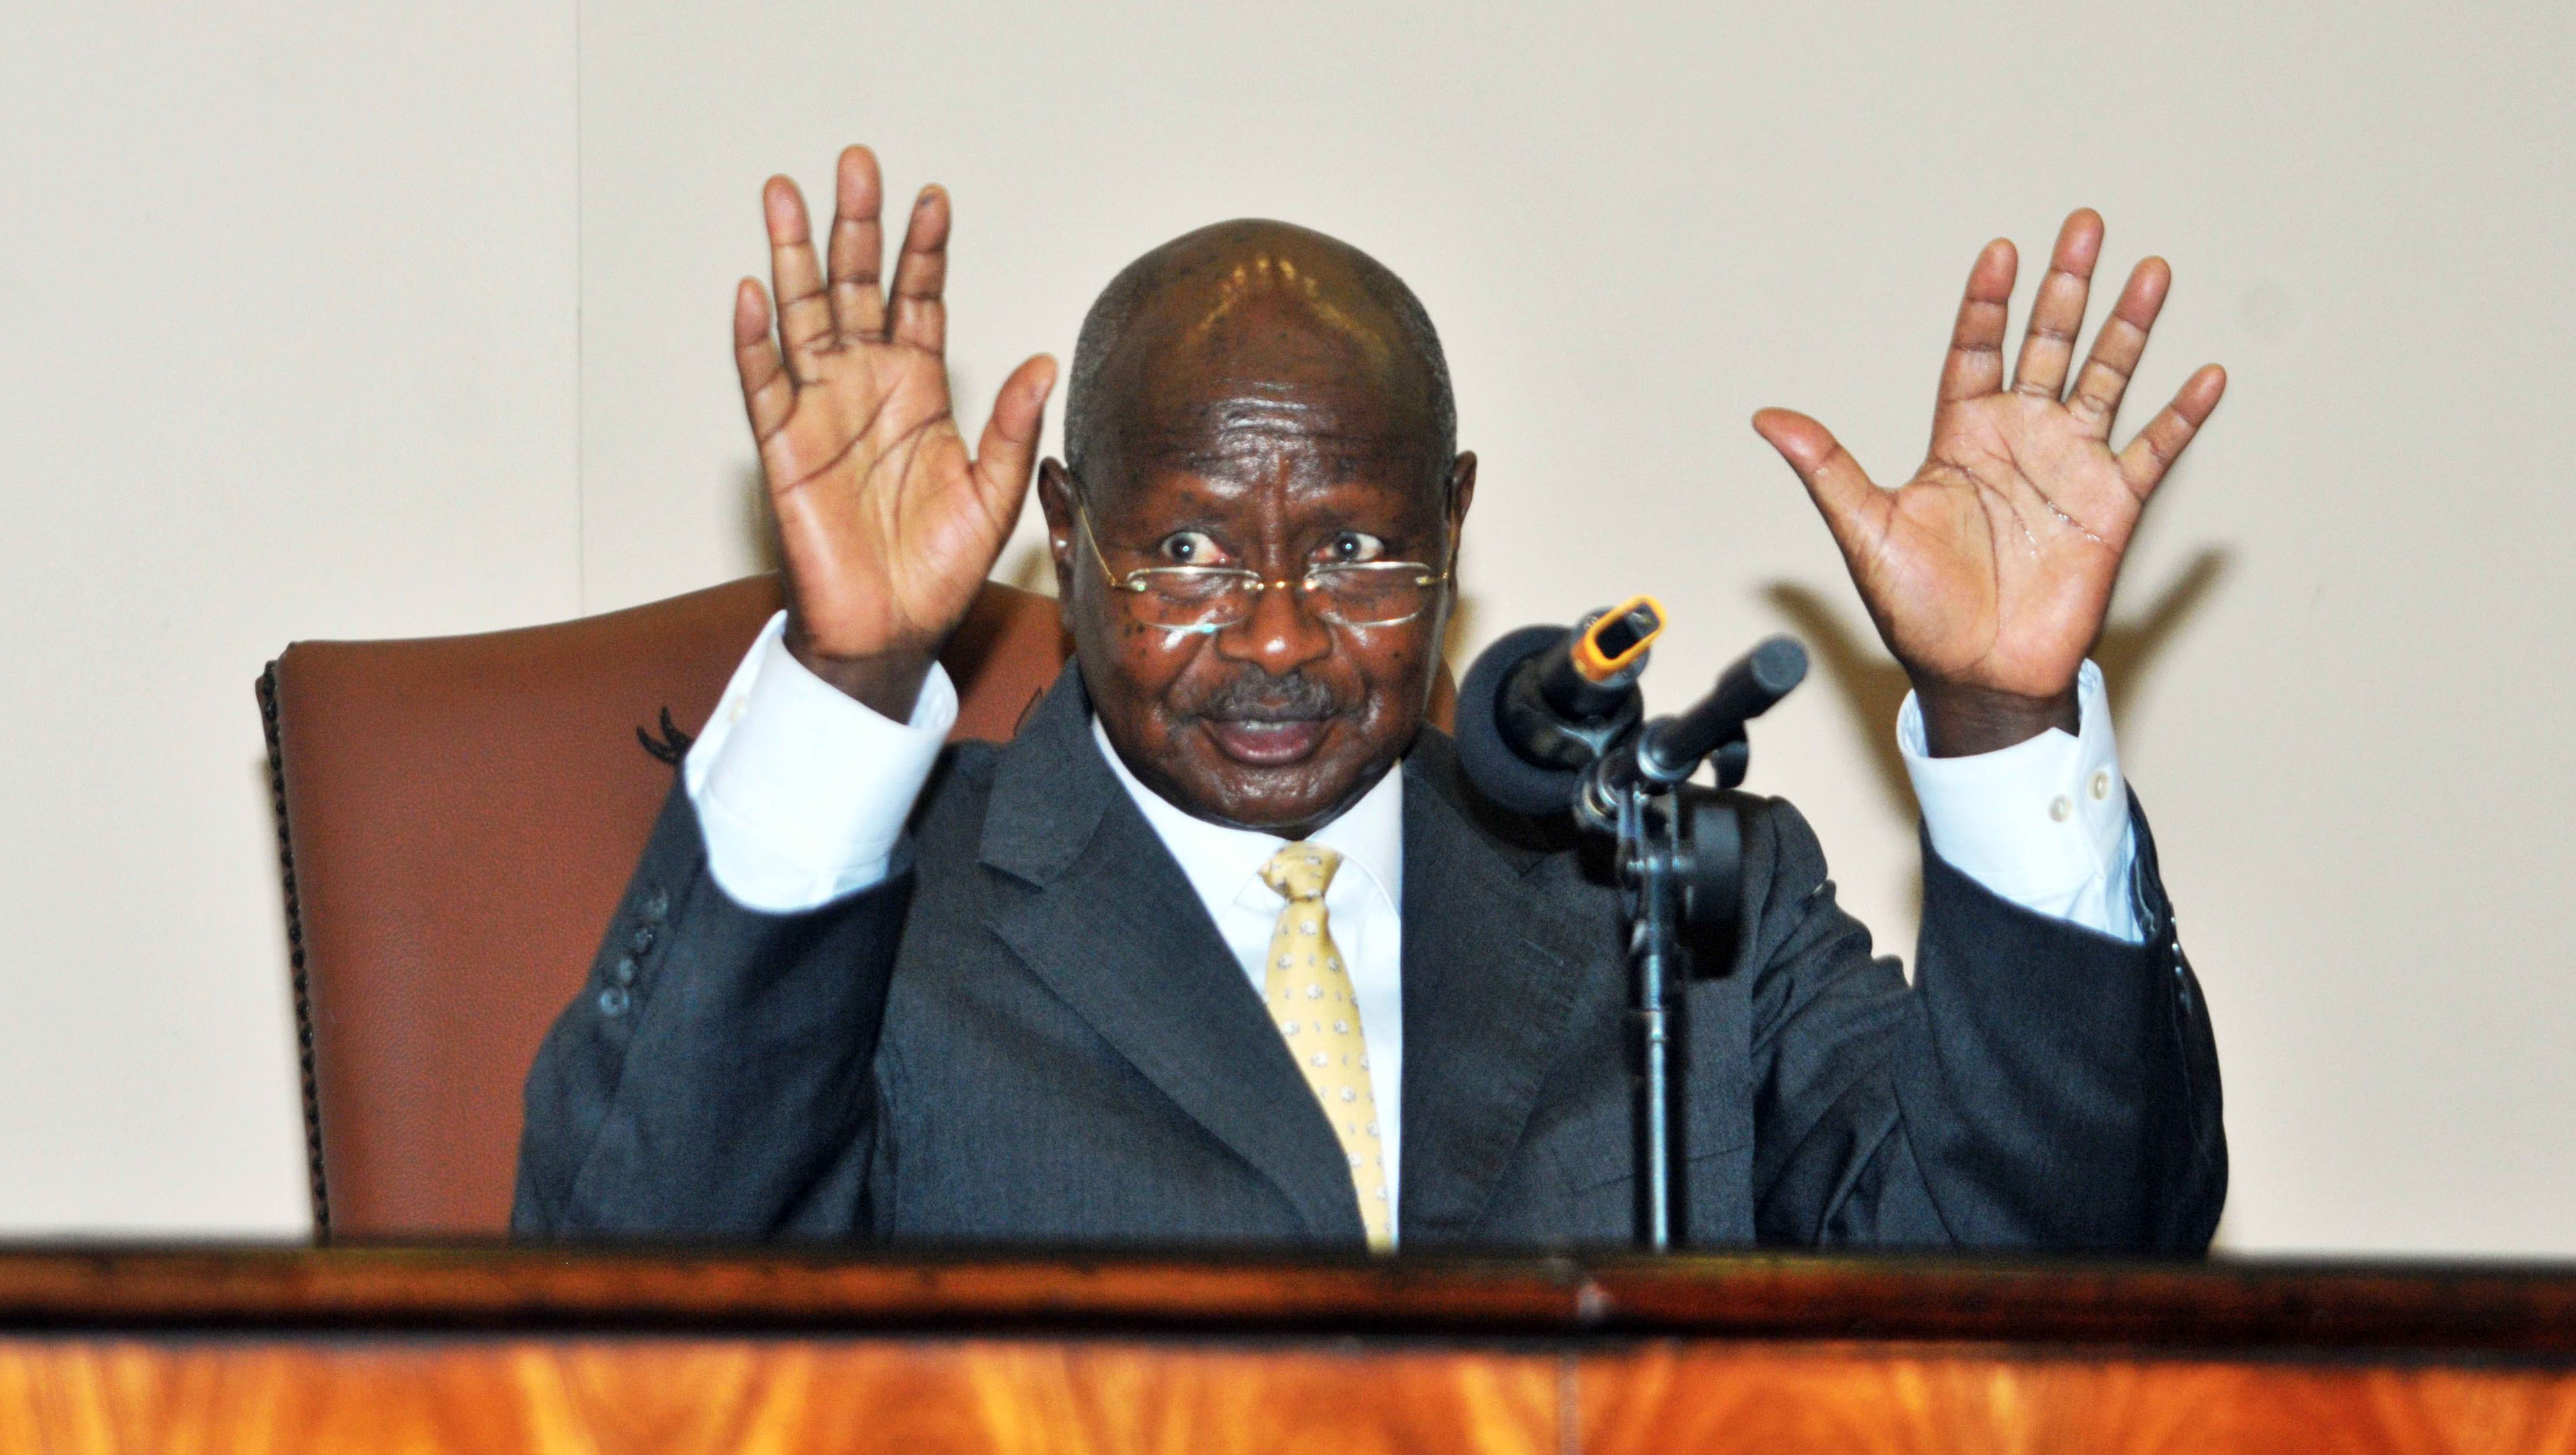 A file picture dated 24 February 2014 shows Ugandan President Yoweri Museveni signing the anti-gay legislation in Entebbe, Uganda. Uganda's Constitutional Court on 01 August 2014 annulled an anti-gay bill passed by parliament that introduced lengthy prison sentences for people who engage in homosexual acts. The judges ruled in favour of a group of activists who argued that parliament did not have a quorum when it passed the bill in December. Since the law was passed, Ugandan homosexuals had been facing arbitrary arrests, police abuse and extortion